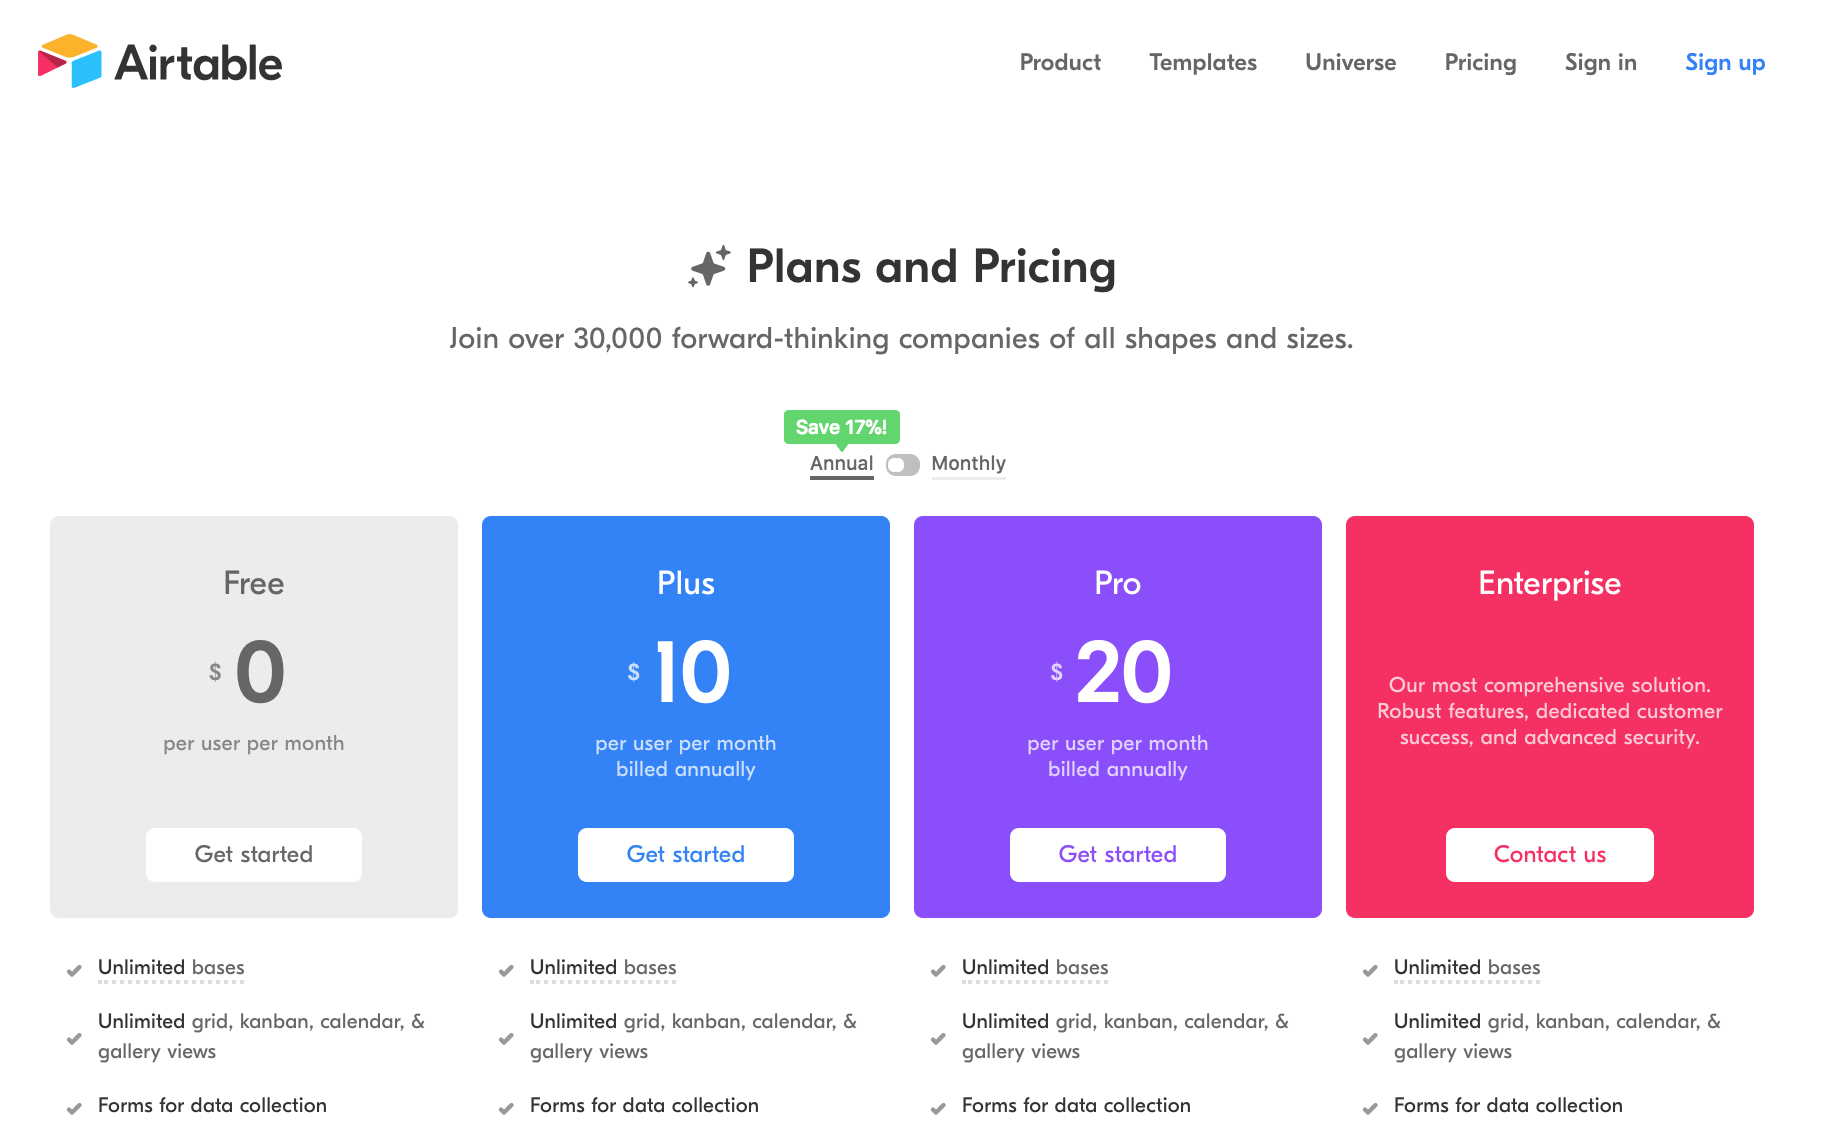 A screenshot of Airtable's pricing page (Feb 2018) shows a potential point of friction along the user journey. UX journey map.